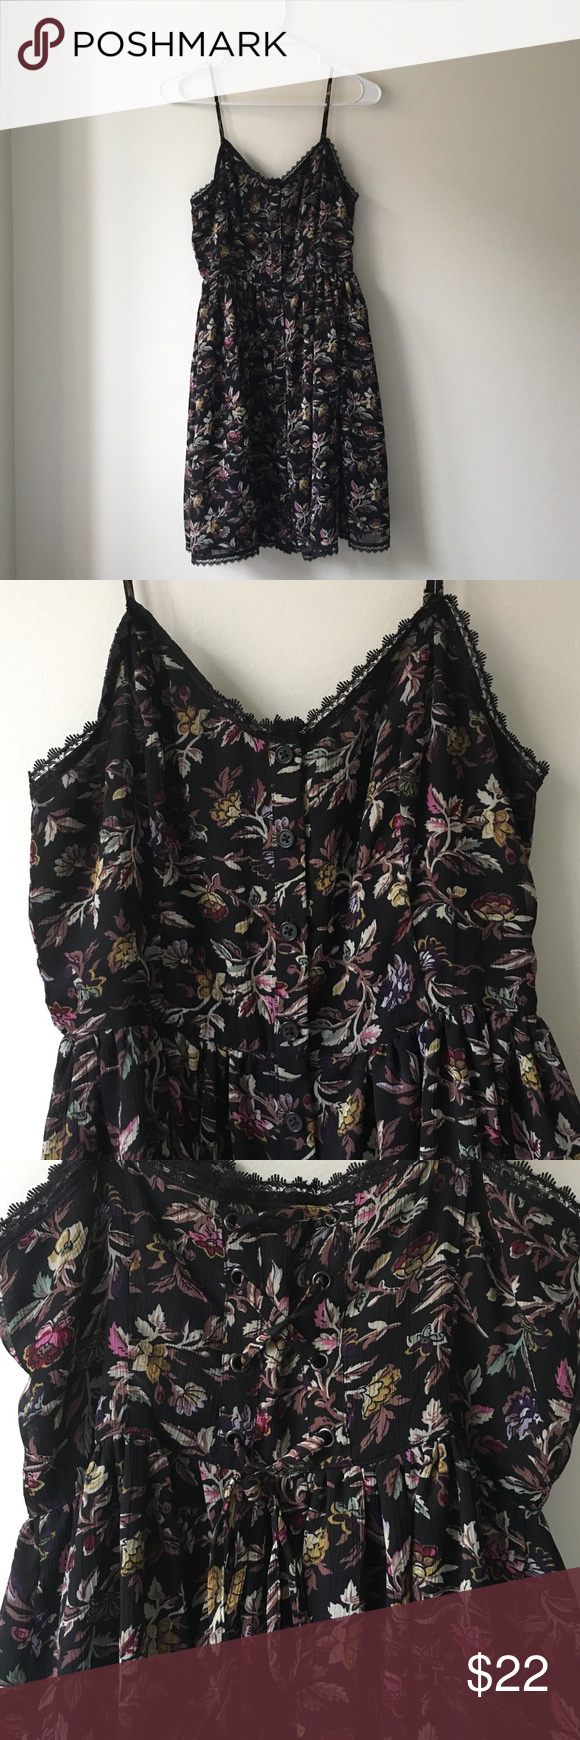 Urban Outfitters Reformed Floral Cross Tie Dress Been wormed but still in really great condition. Urban Outfitters Dresses